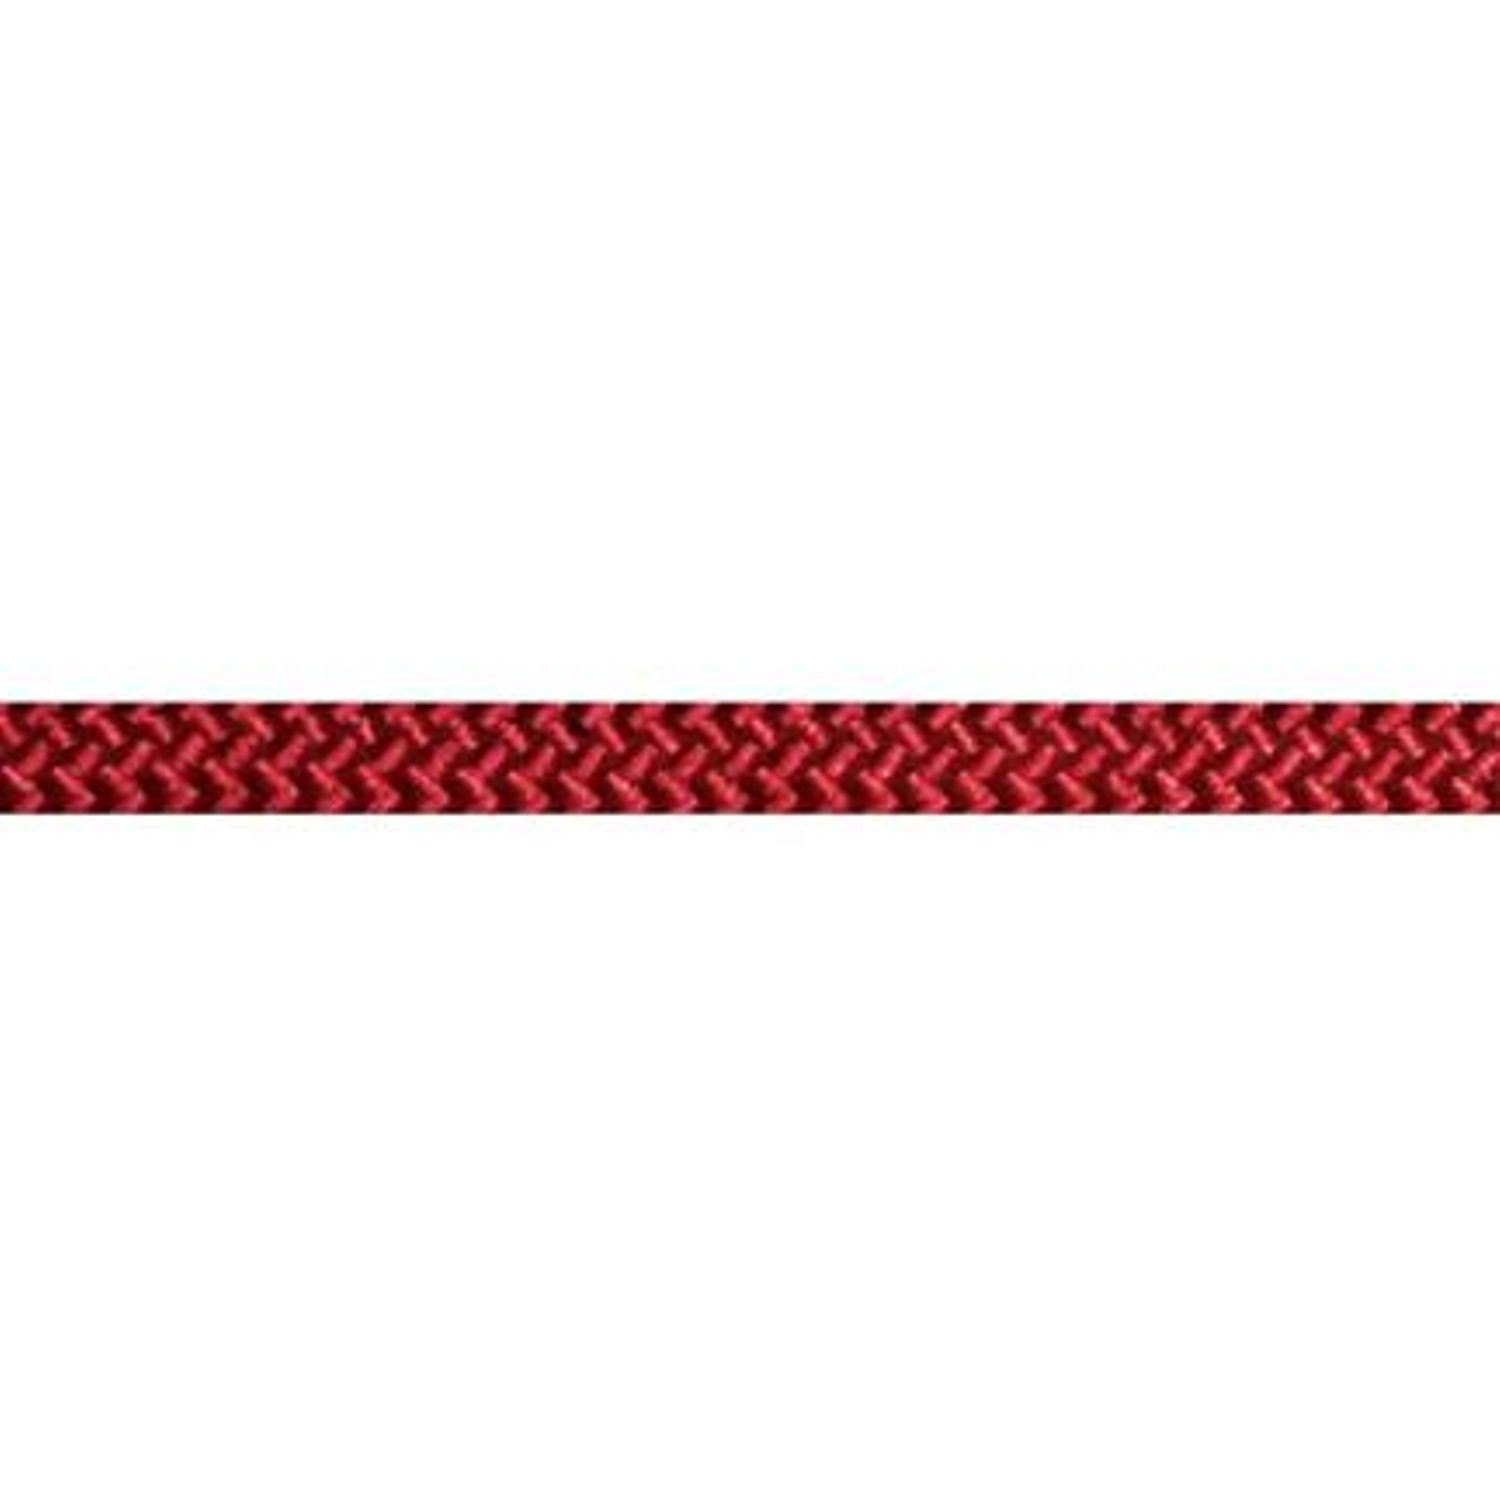 12.5 MM RED STATIC STATIC KERNMANTLE ROPE, 300 FT.